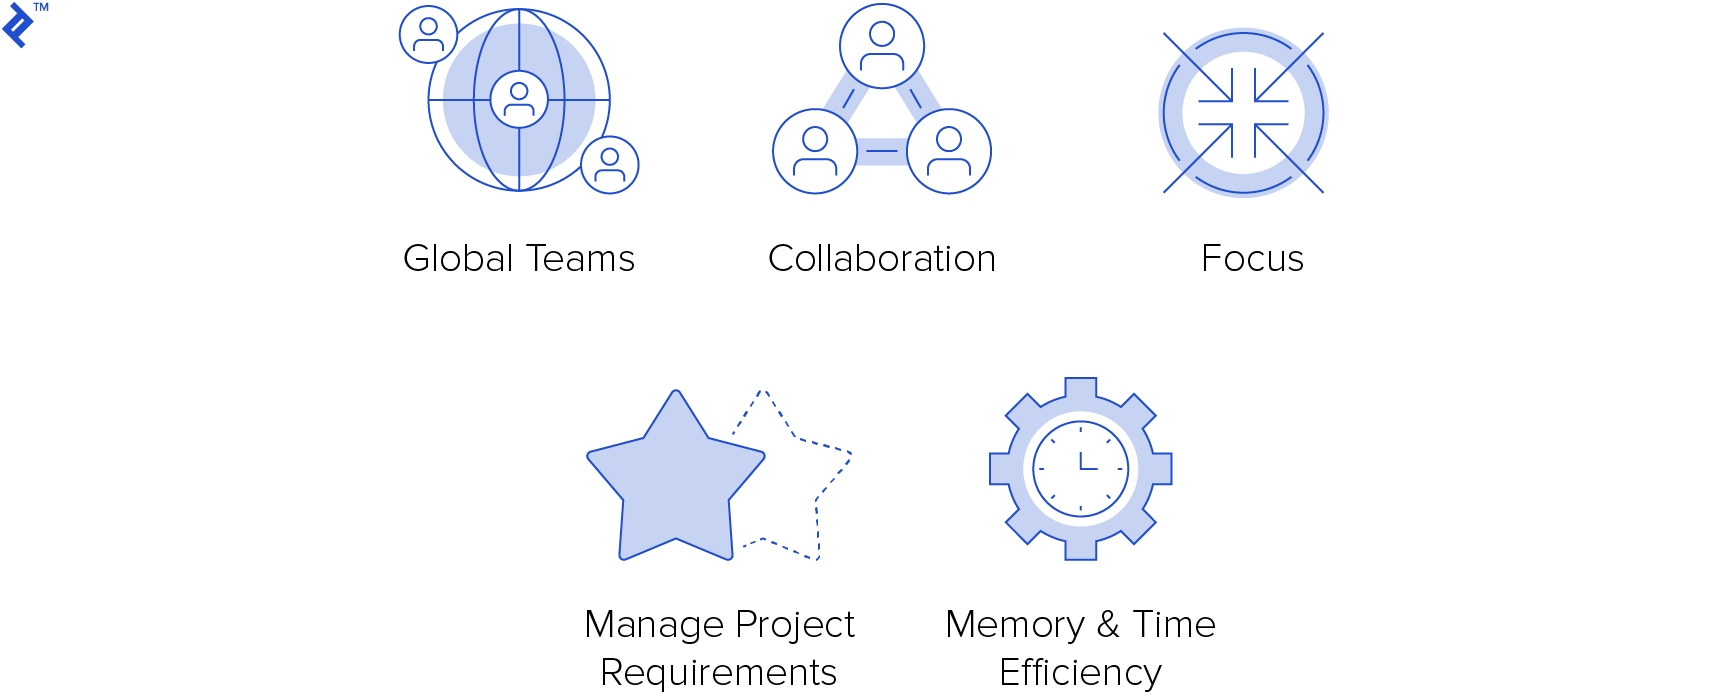 Trello vs. Jira diagram illustrating the reasons for using a project management tool described in the sections below